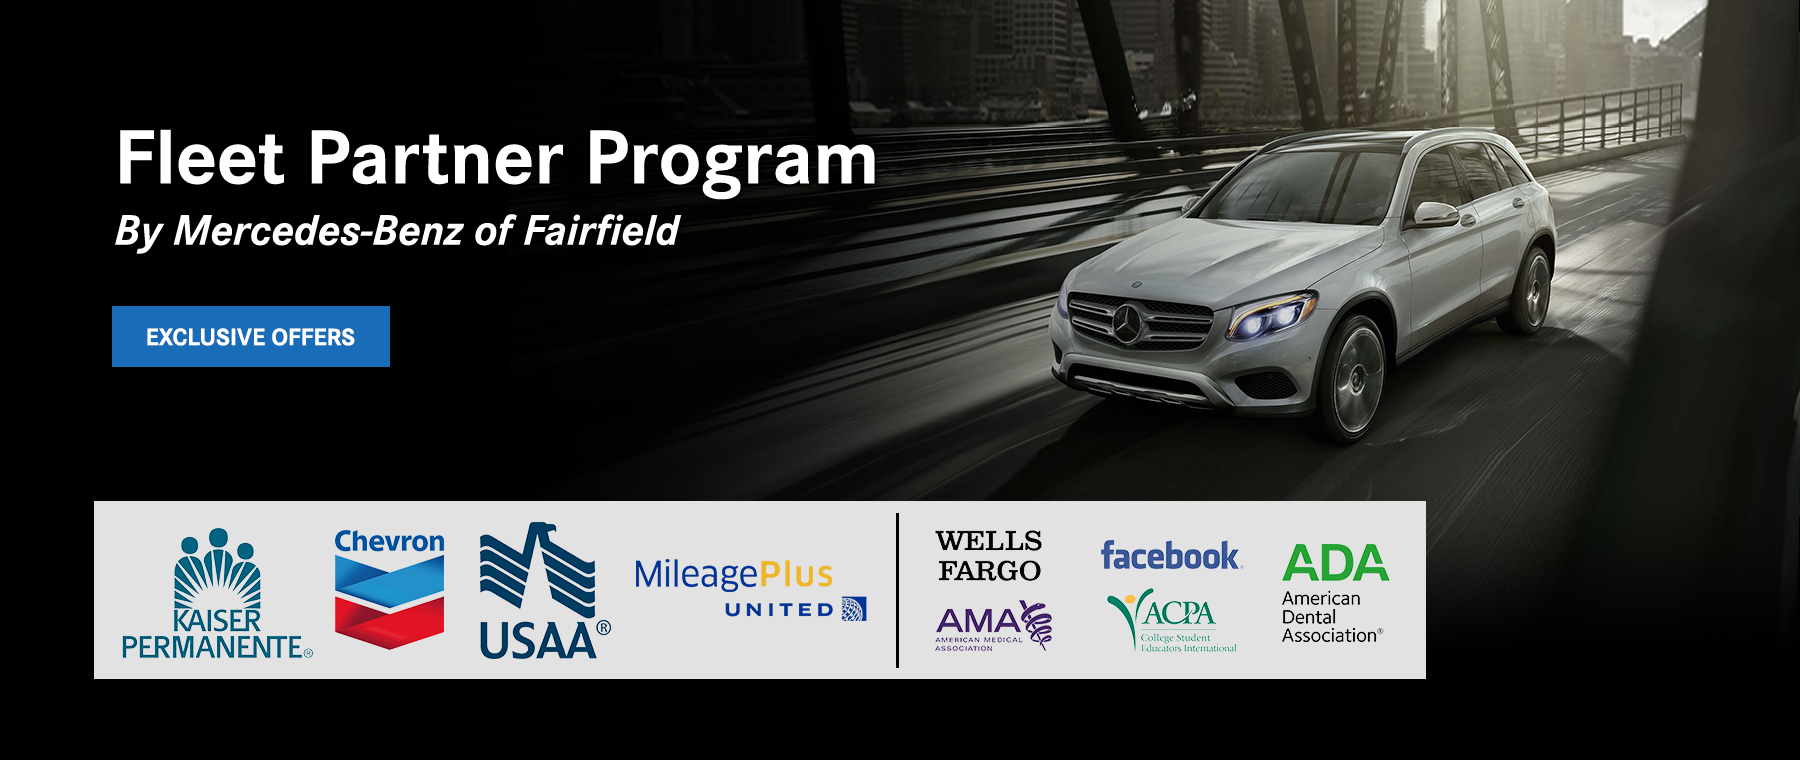 Fleet Partner Program